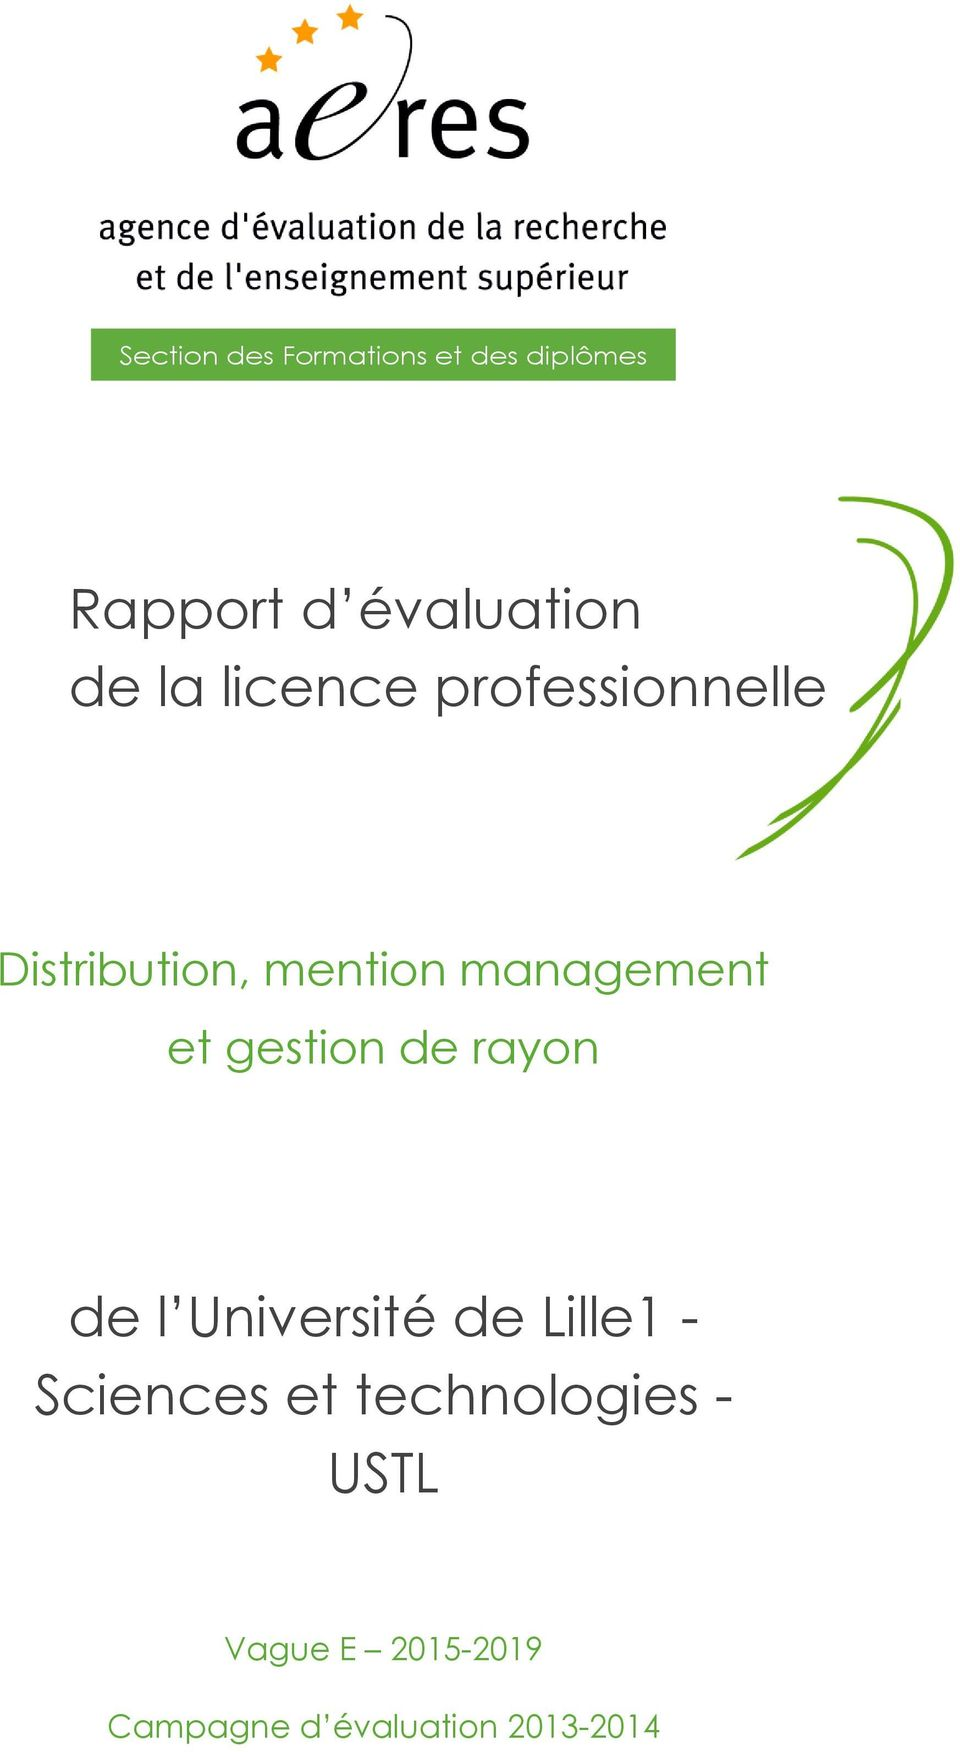 gestion de rayon de l Université de Lille1 - Sciences et